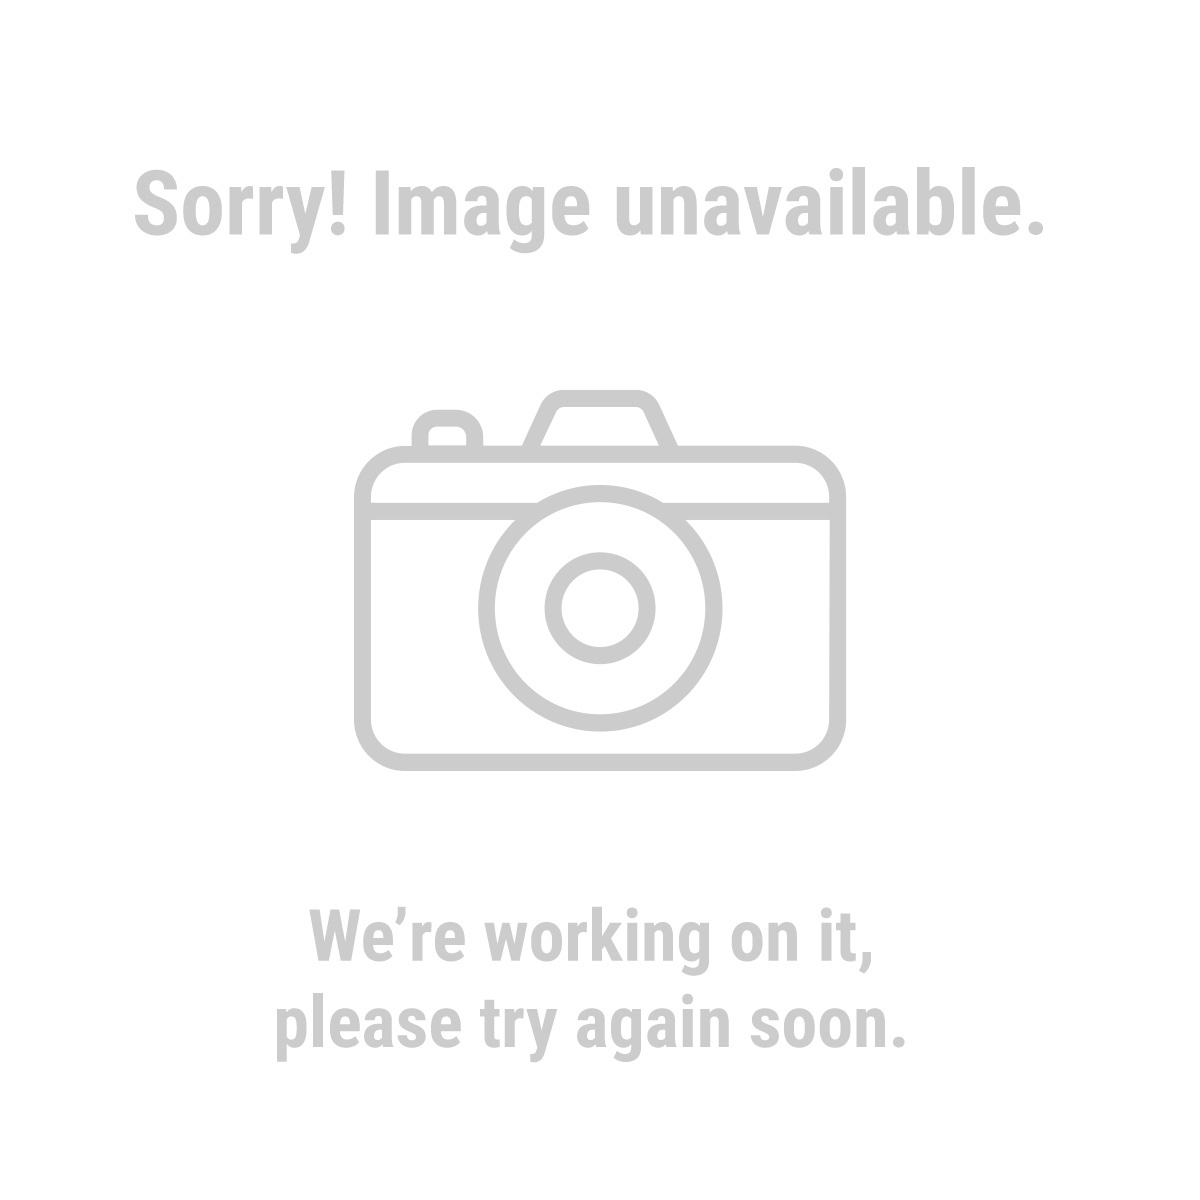 Western Safety Gloves 41980 Leather Palm Gloves